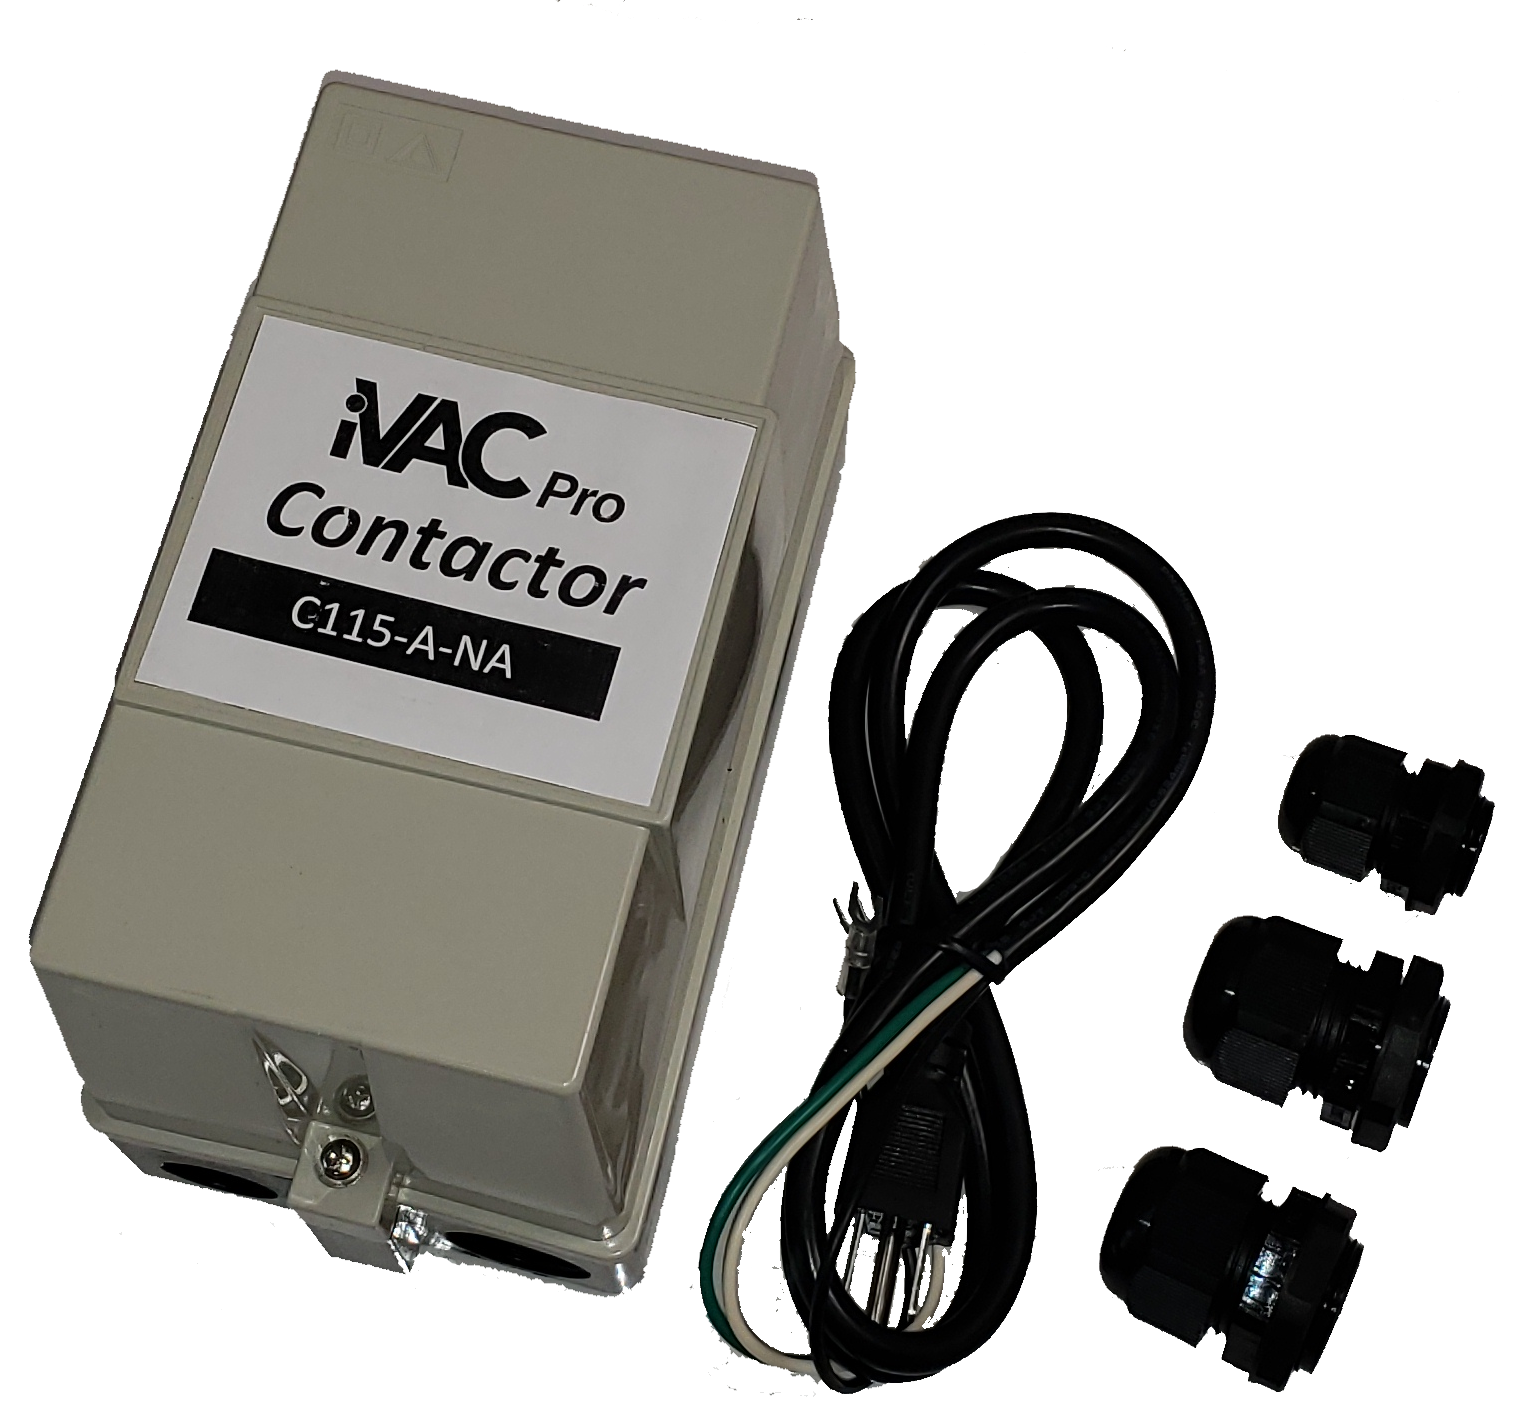 Ivac Contactor High Power Dust Collector Controller Ac 30 Amp Wiring Diagram Operating Current And Last For Several Seconds This Initial Surge Can Over Time Damage The Contacts In Pro Switch